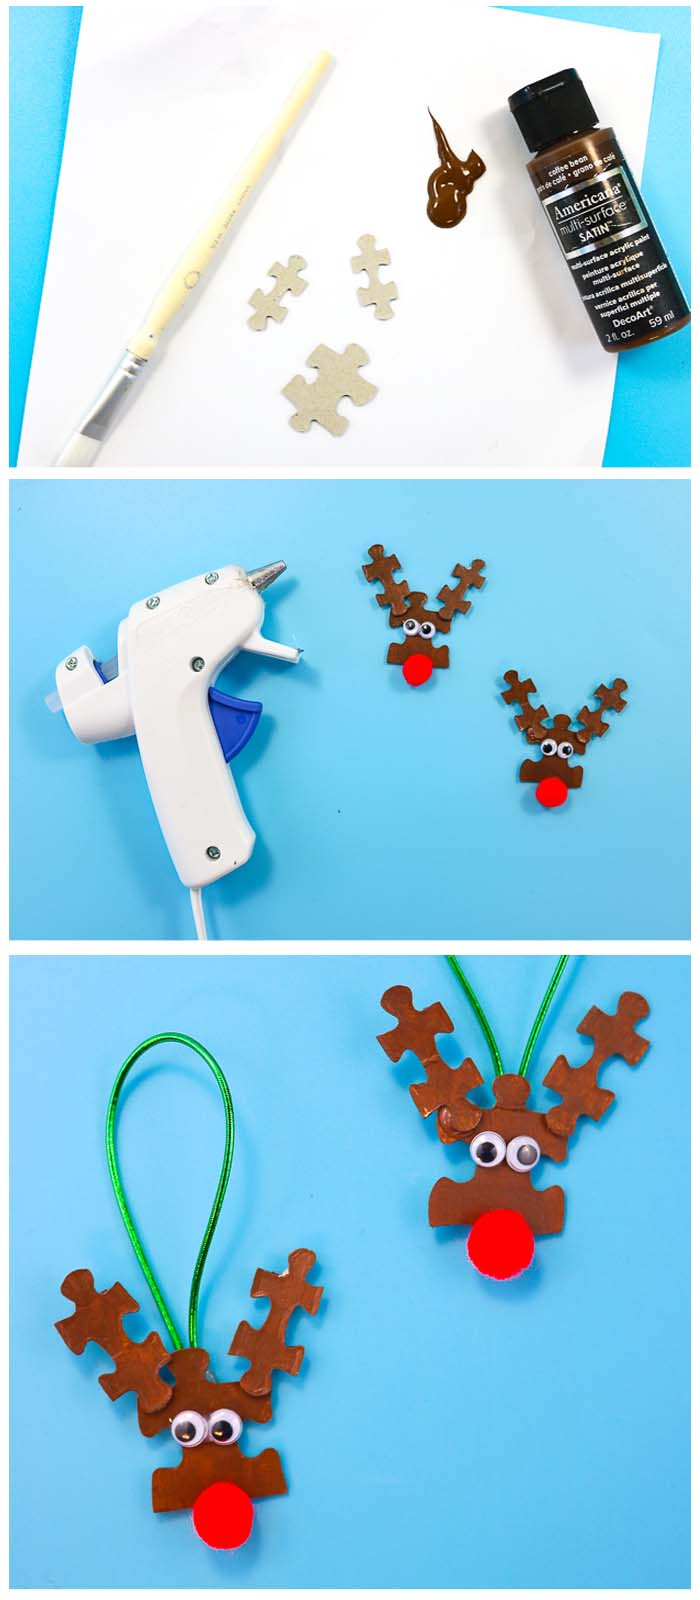 How to Make Puzzle Piece Reindeer Ornaments